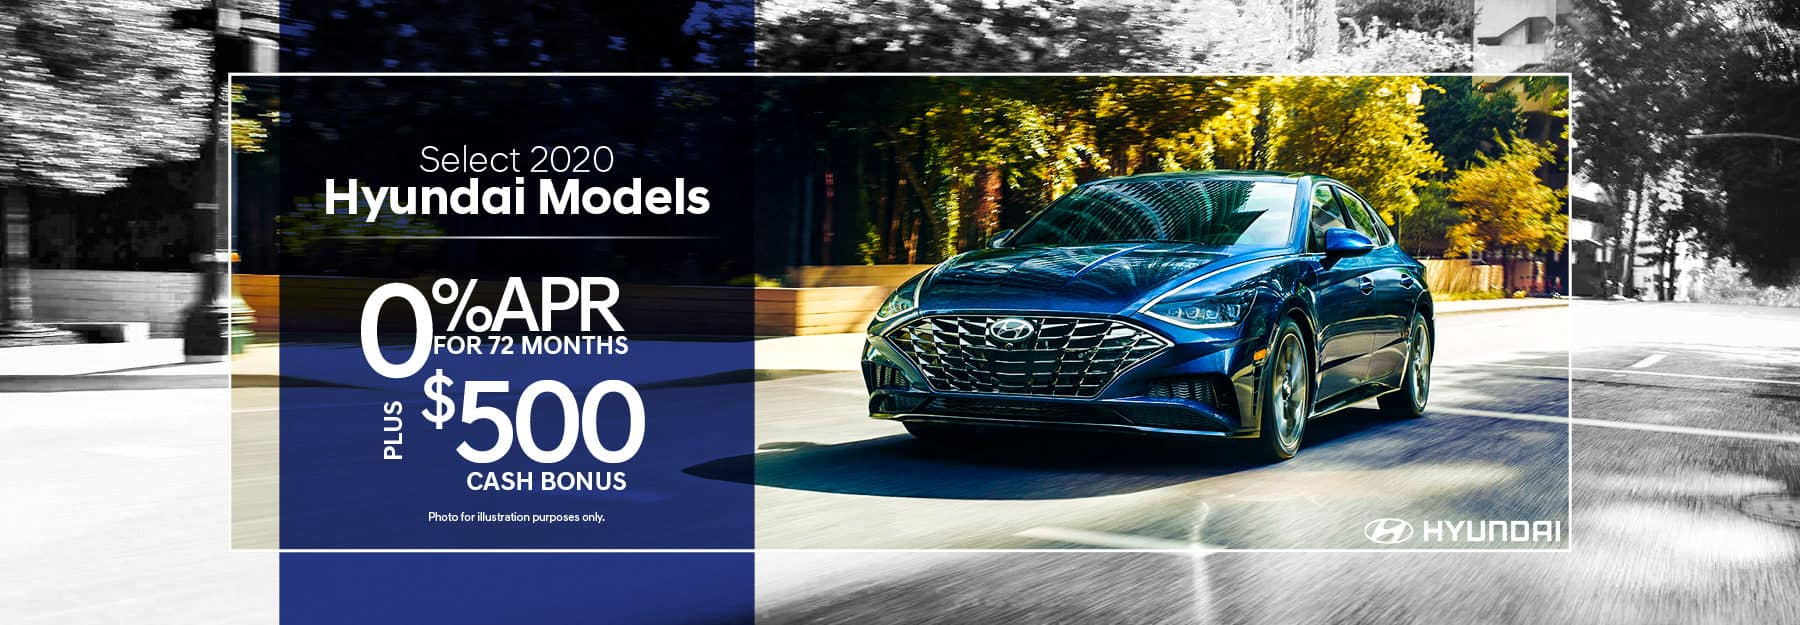 0% APR for 72 months plus $500 on select 2020 models